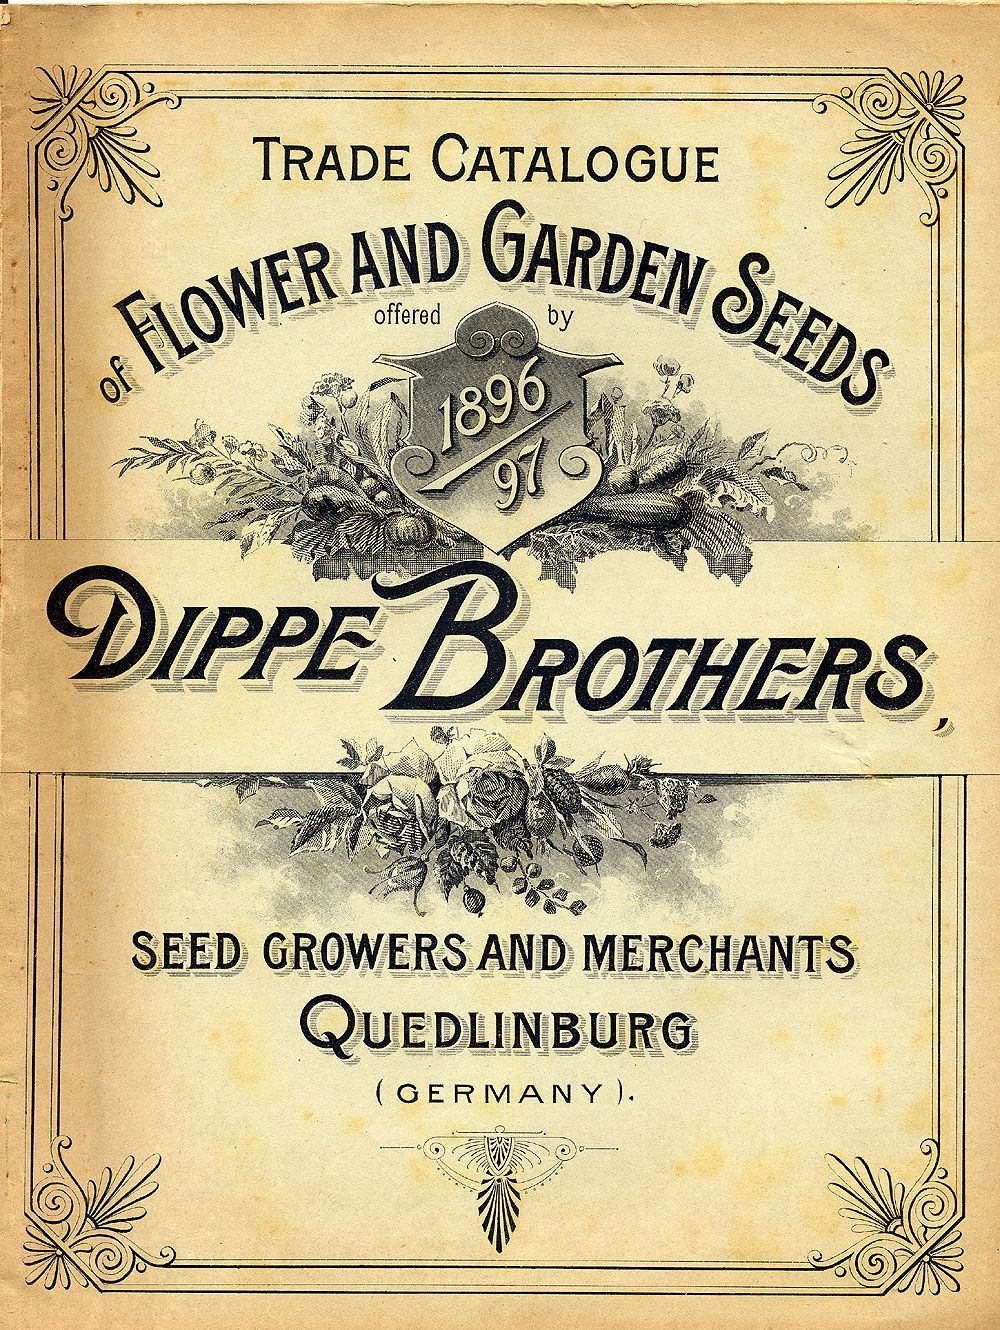 Seed catalogue cover art, 1896 (With images) Clip art